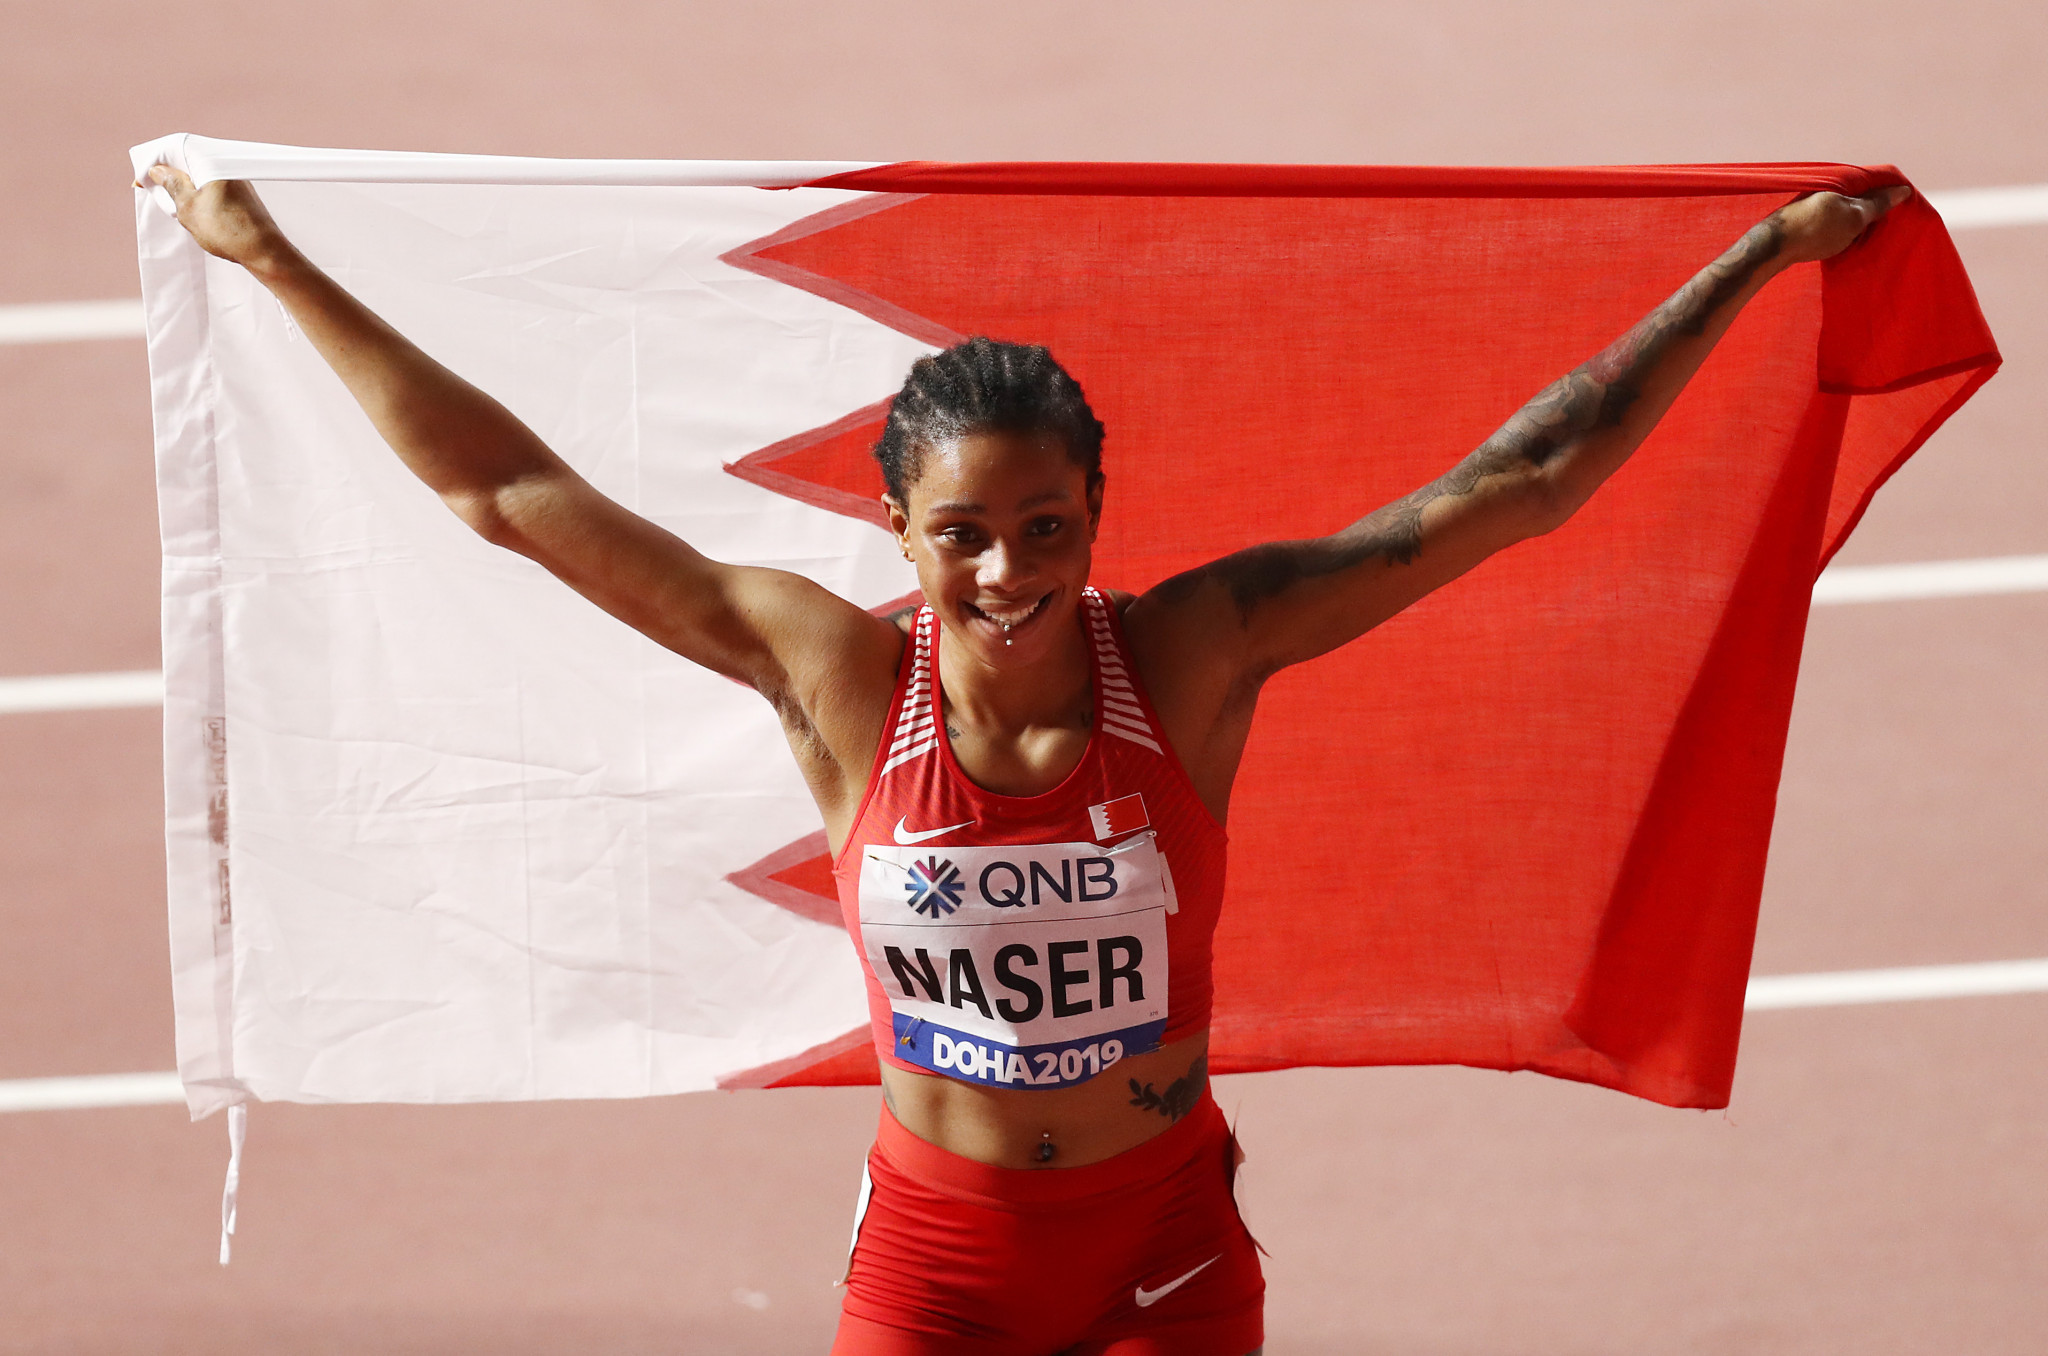 The decision by the World Athletics Disciplinary Tribunal not to uphold the Athletics Integrity Unit's proposed ban on Bahrain's world 400m champion Salwa Eid Naser has proved controversial ©Getty Images